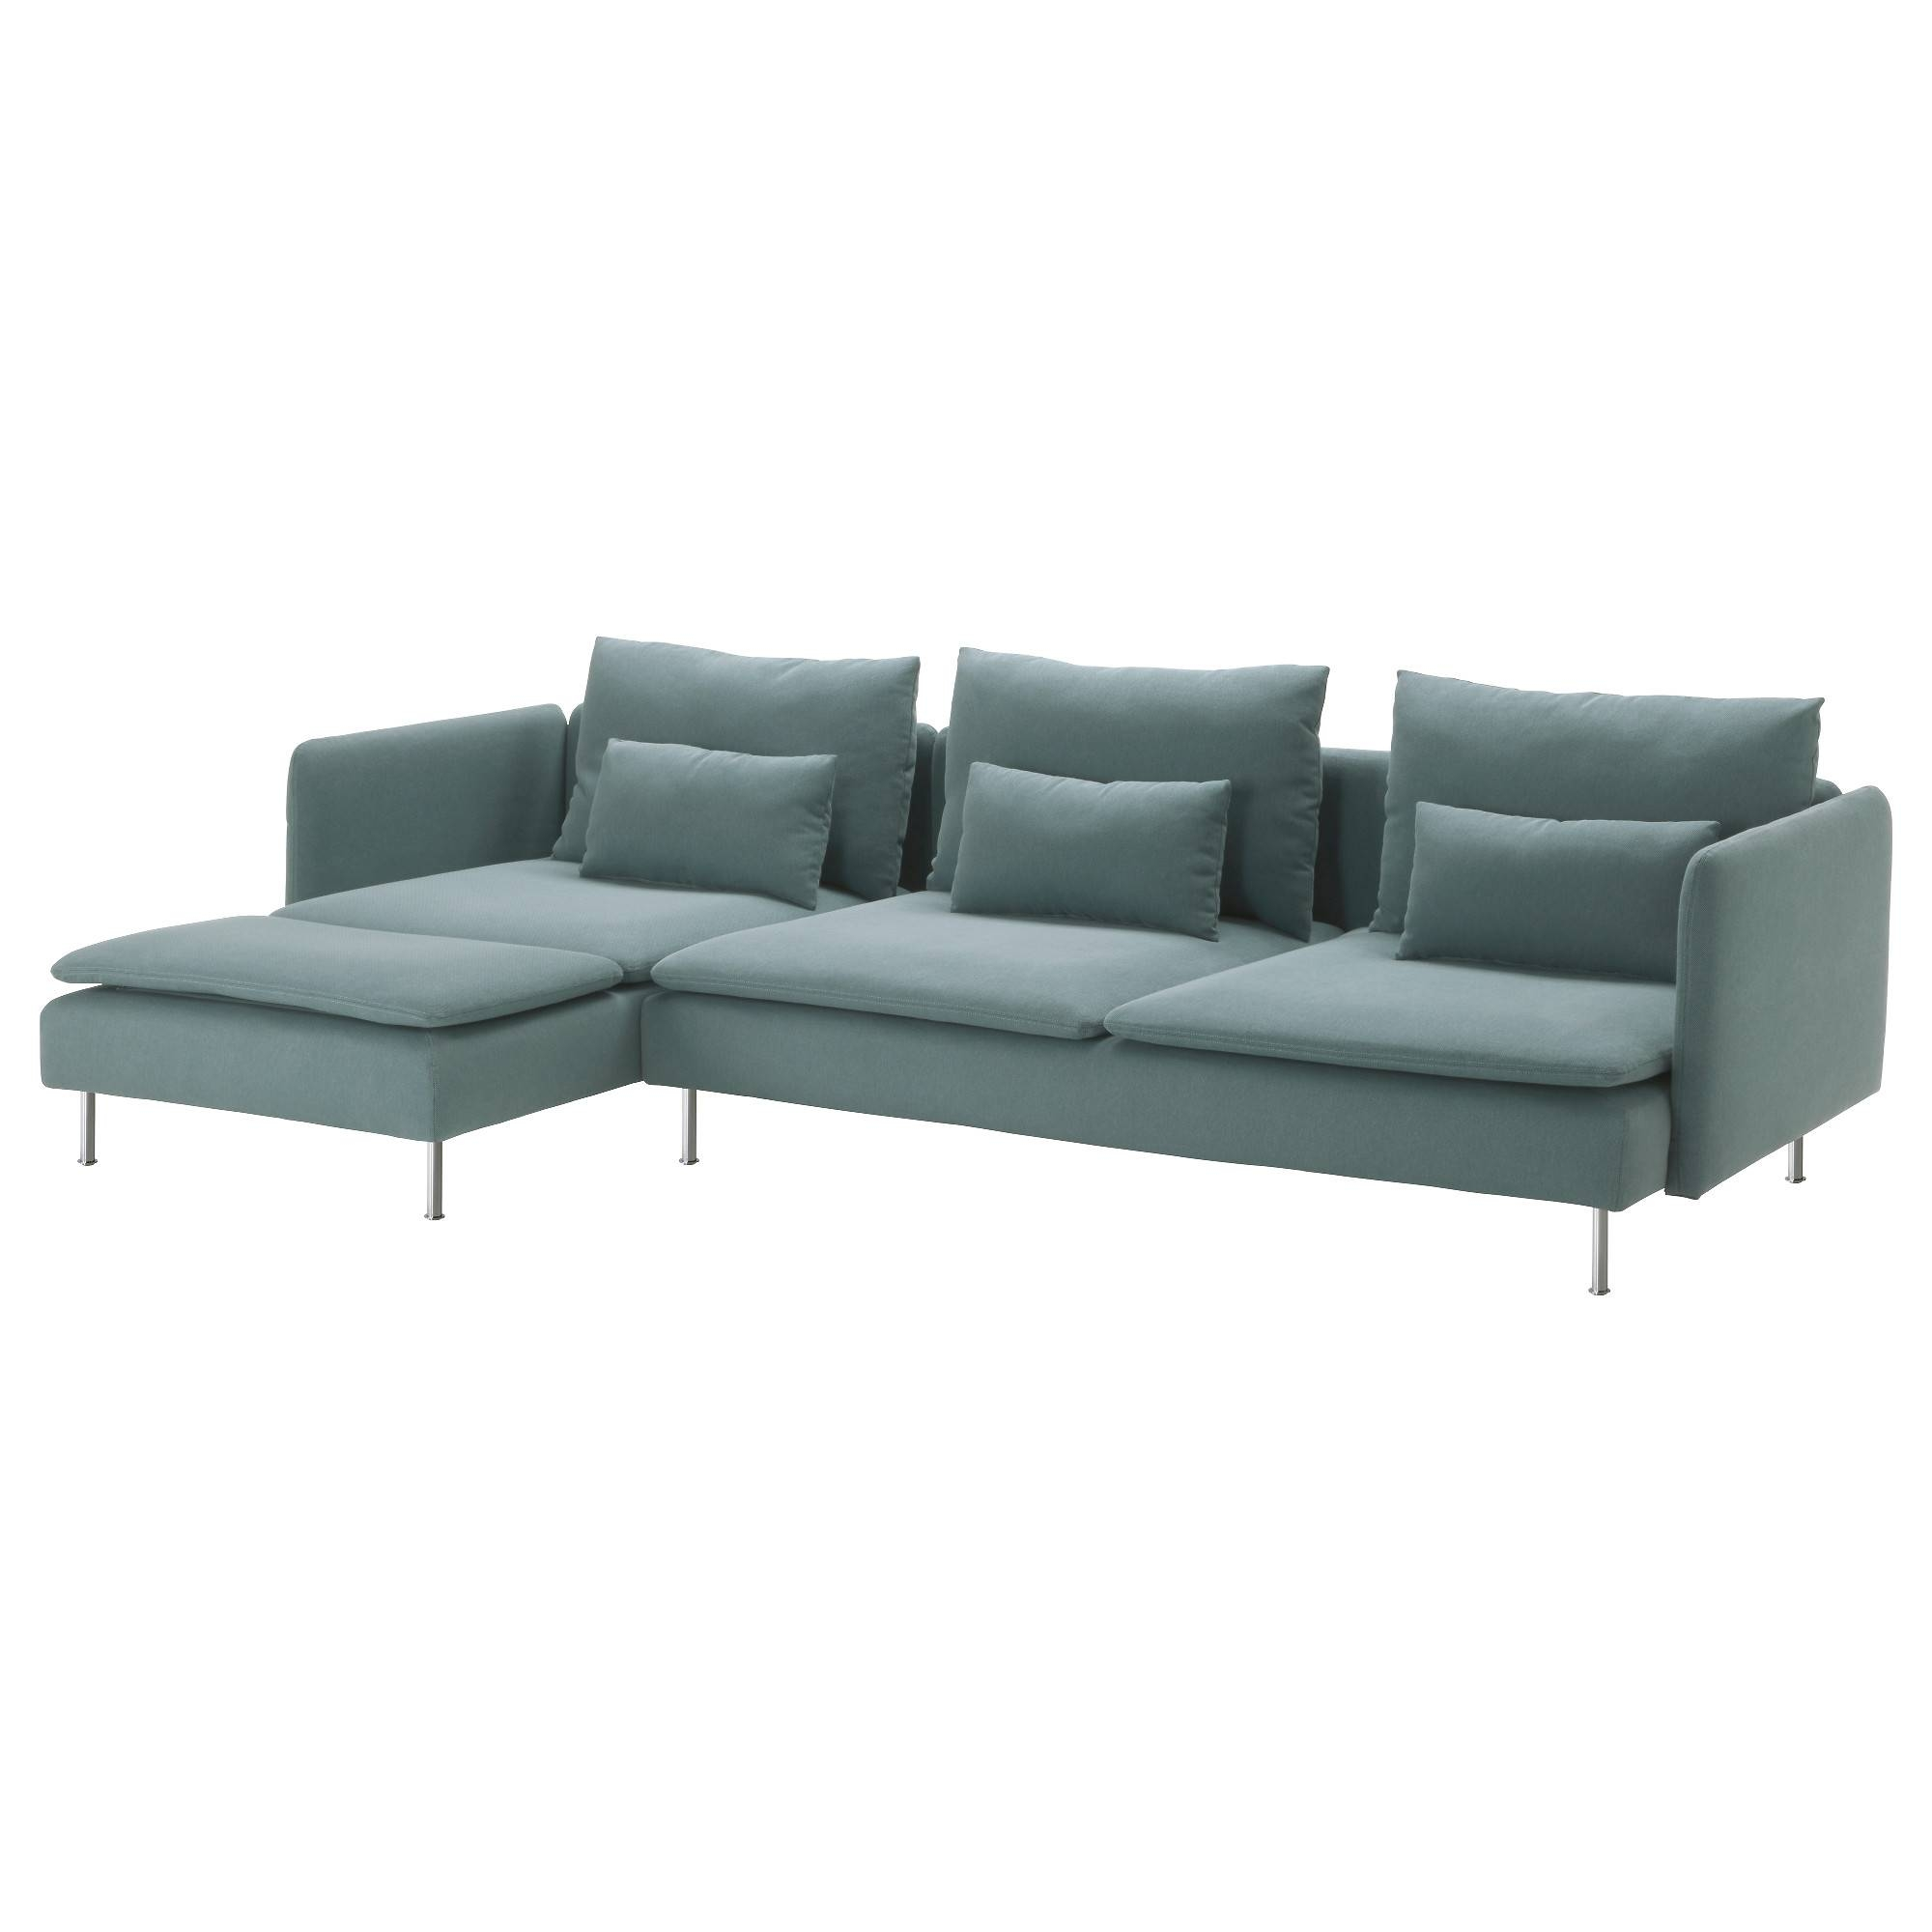 Modular Sofas & Sectionals – Ikea For Sleeper Sofa Sectional Ikea (View 15 of 25)